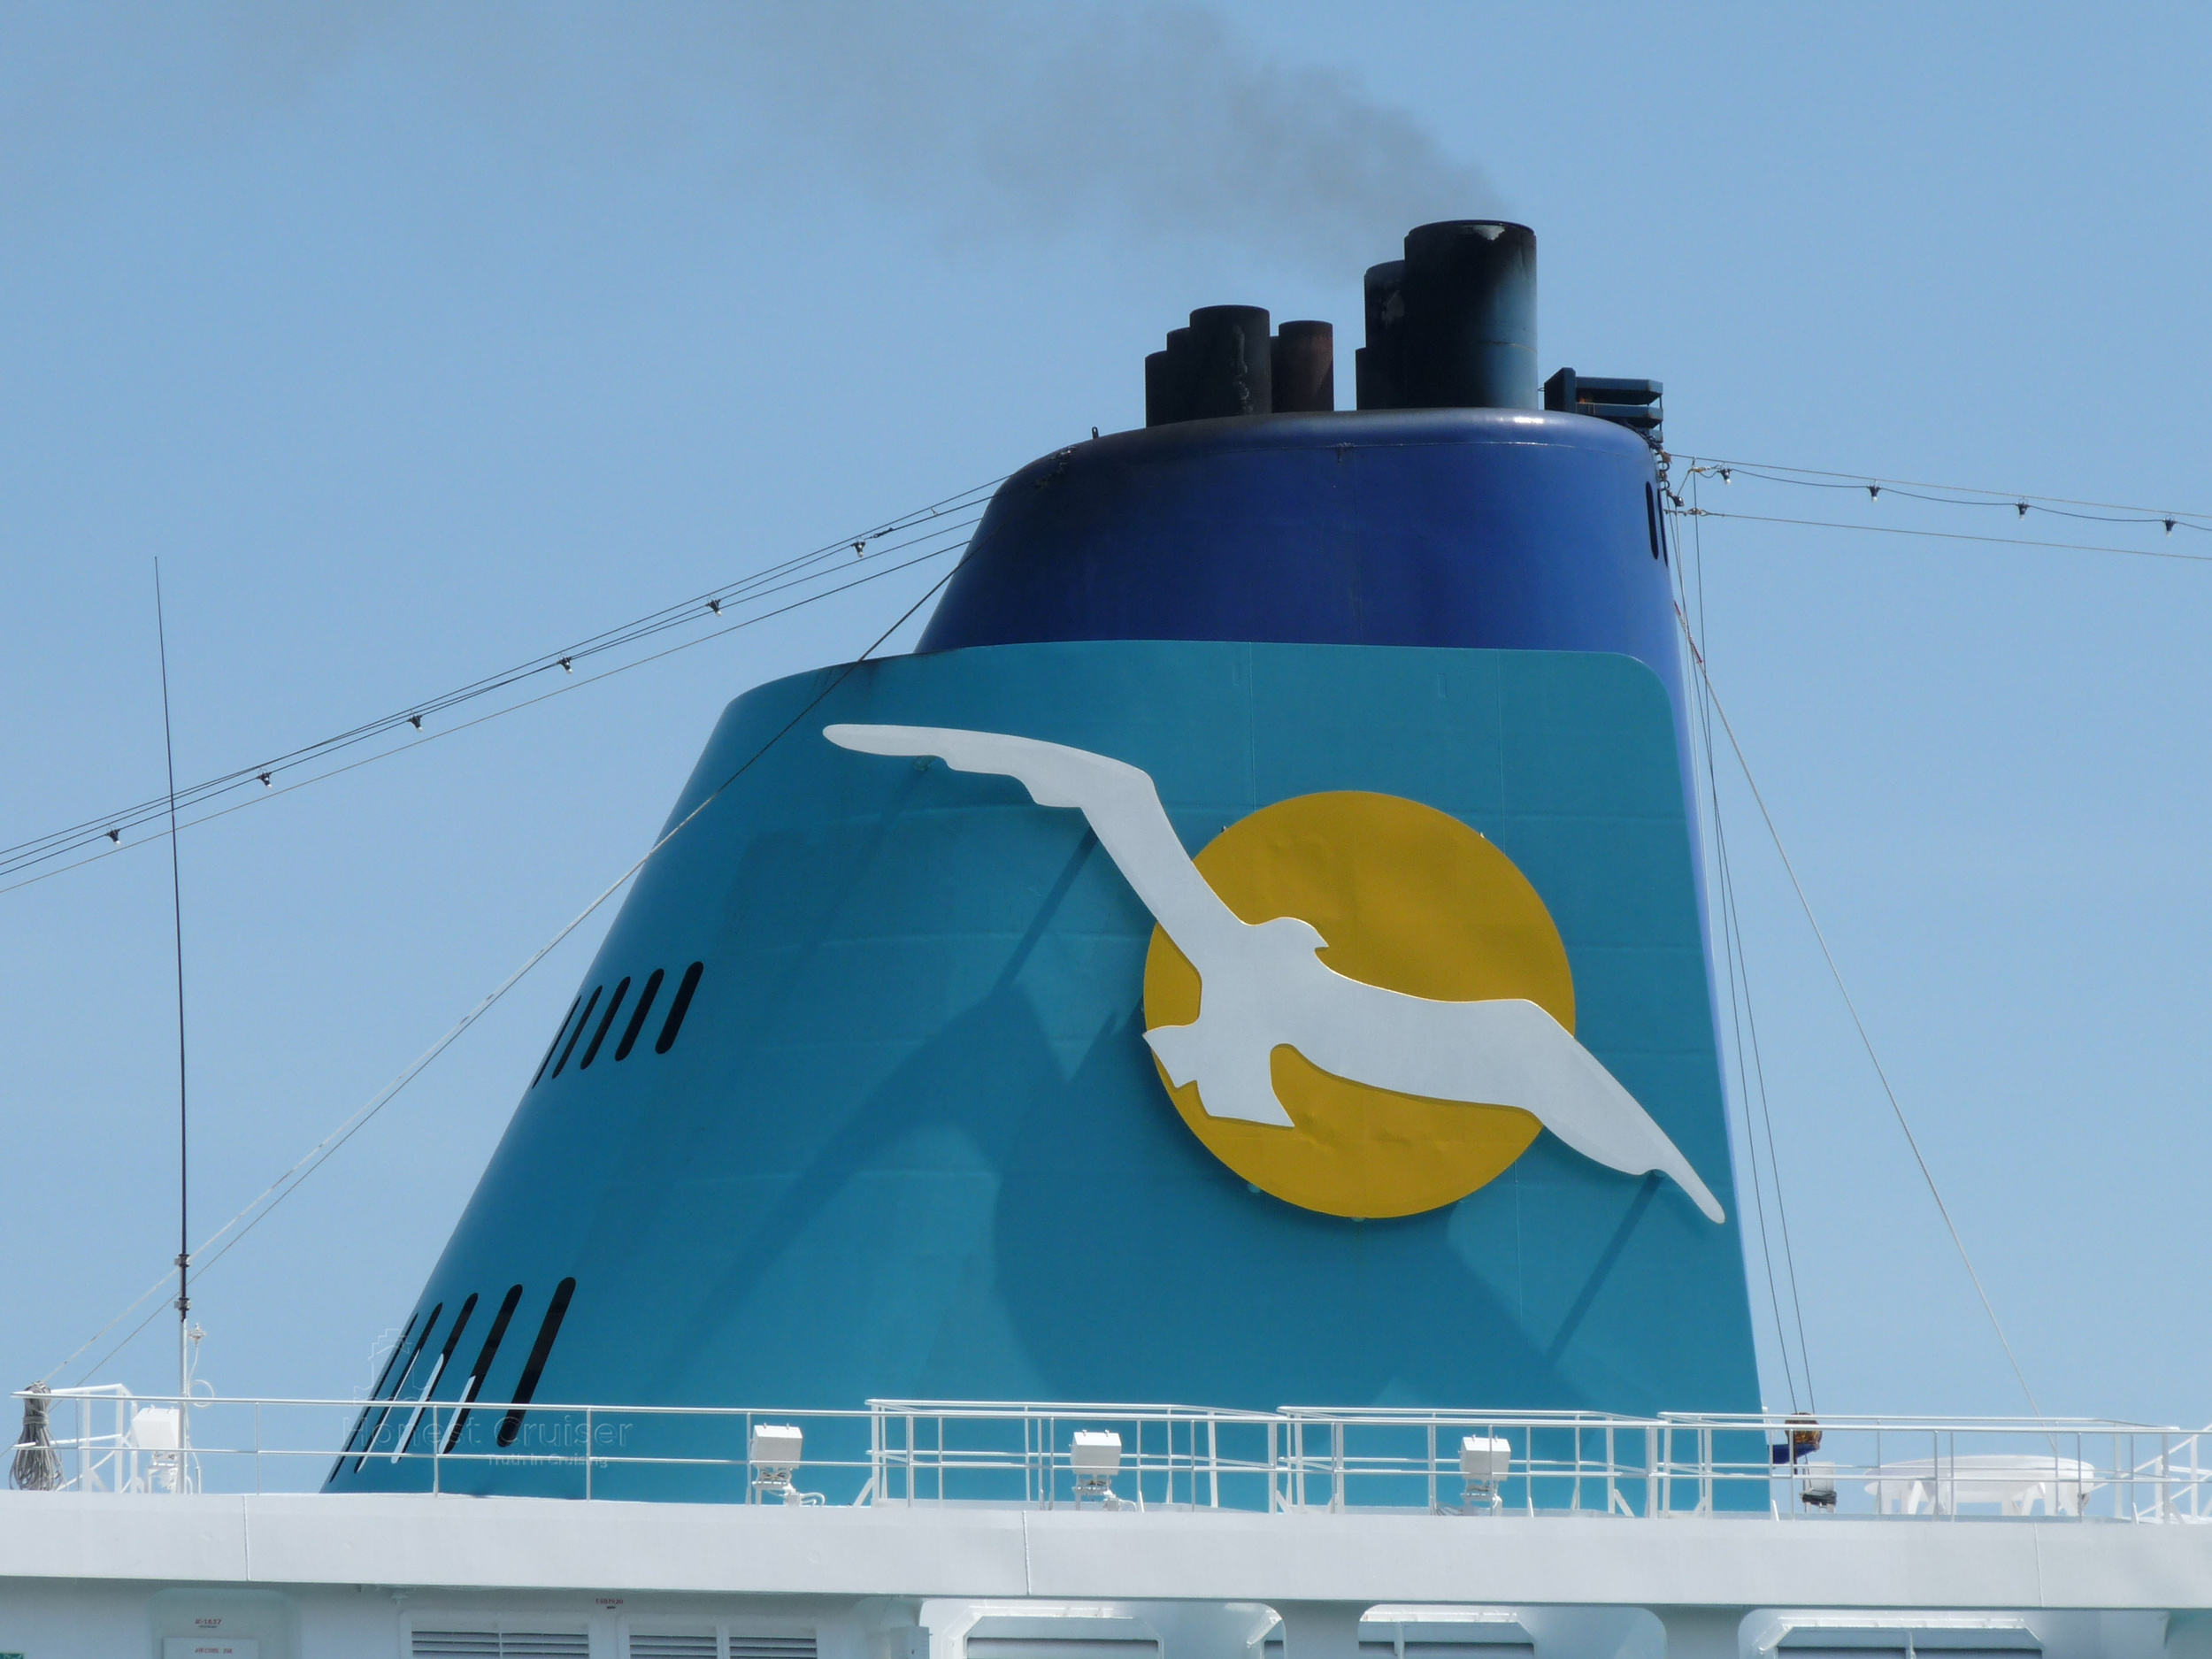 Amadea's funnel blazed with Phoenix Reisen's logo, is very similar in design to her big sister's twin.